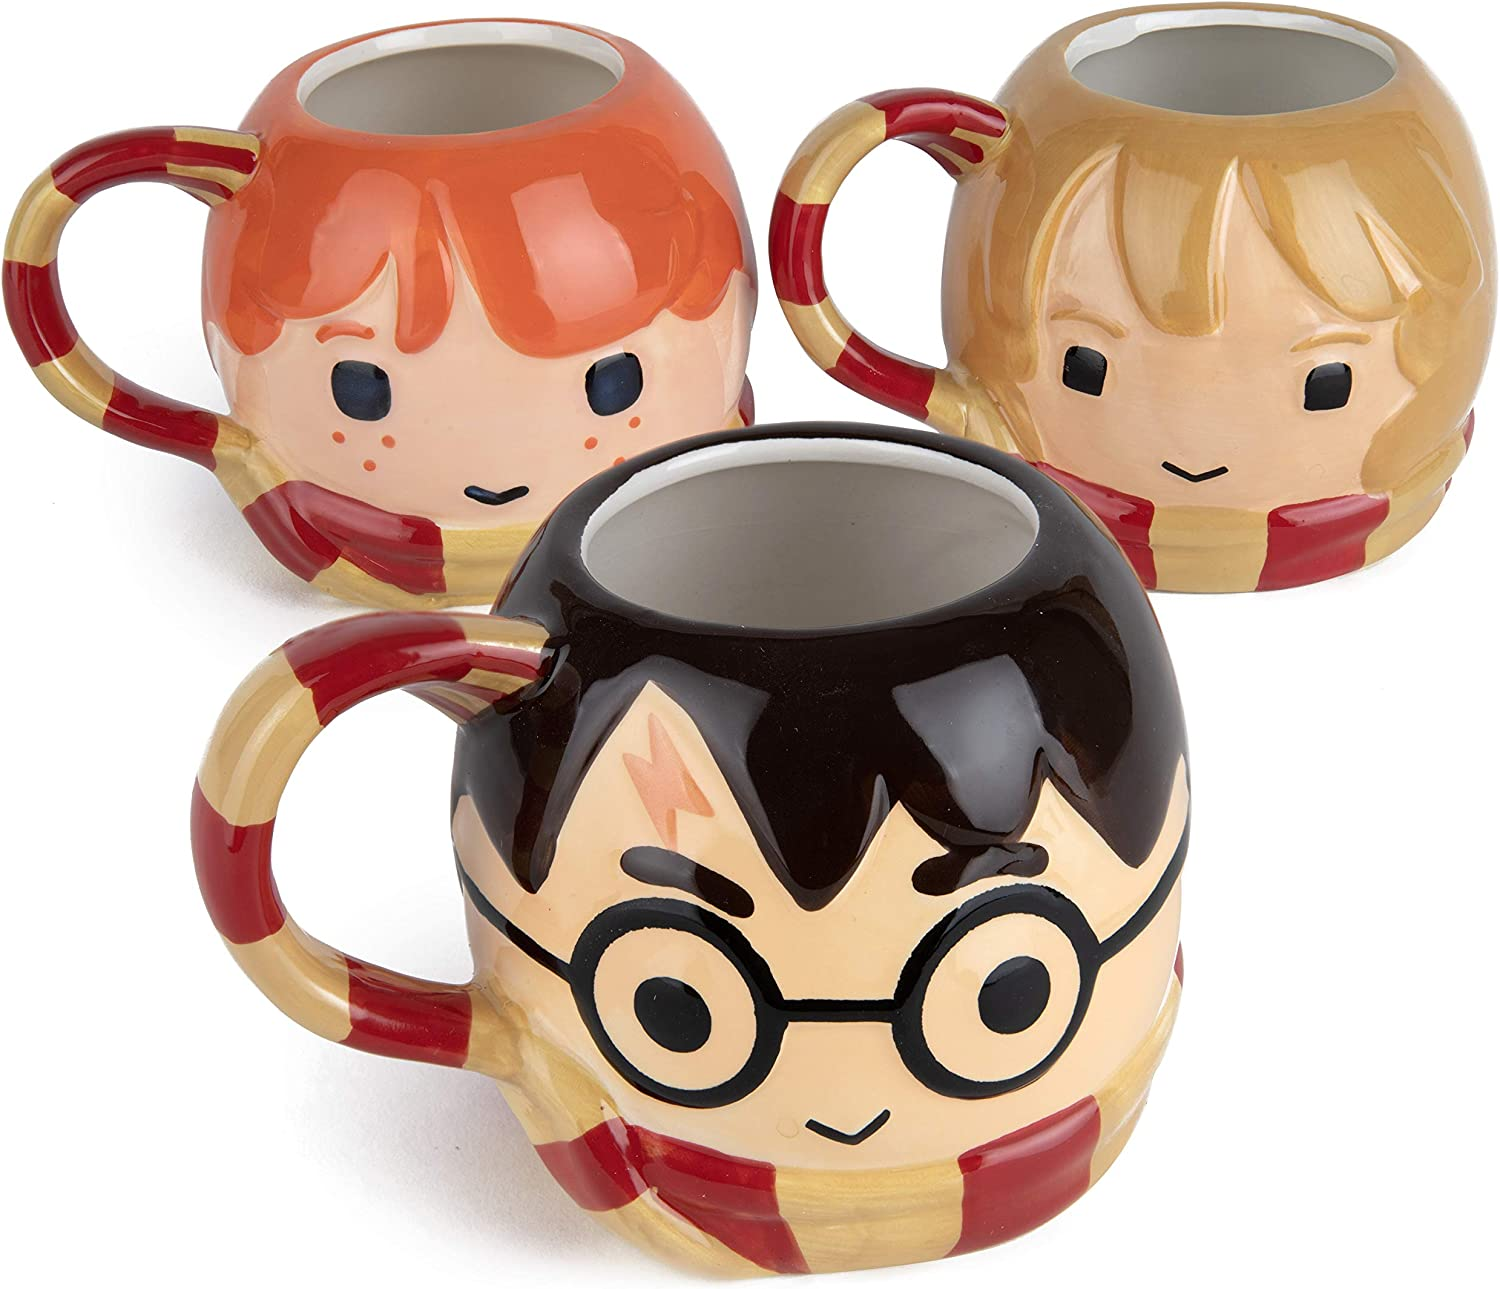 Harry Potter Coffee Mugs, Set of 3 - Chibi Harry, Hermione and Ron with Gryffindor Scarf Handle - Ceramic - Large, 24 oz